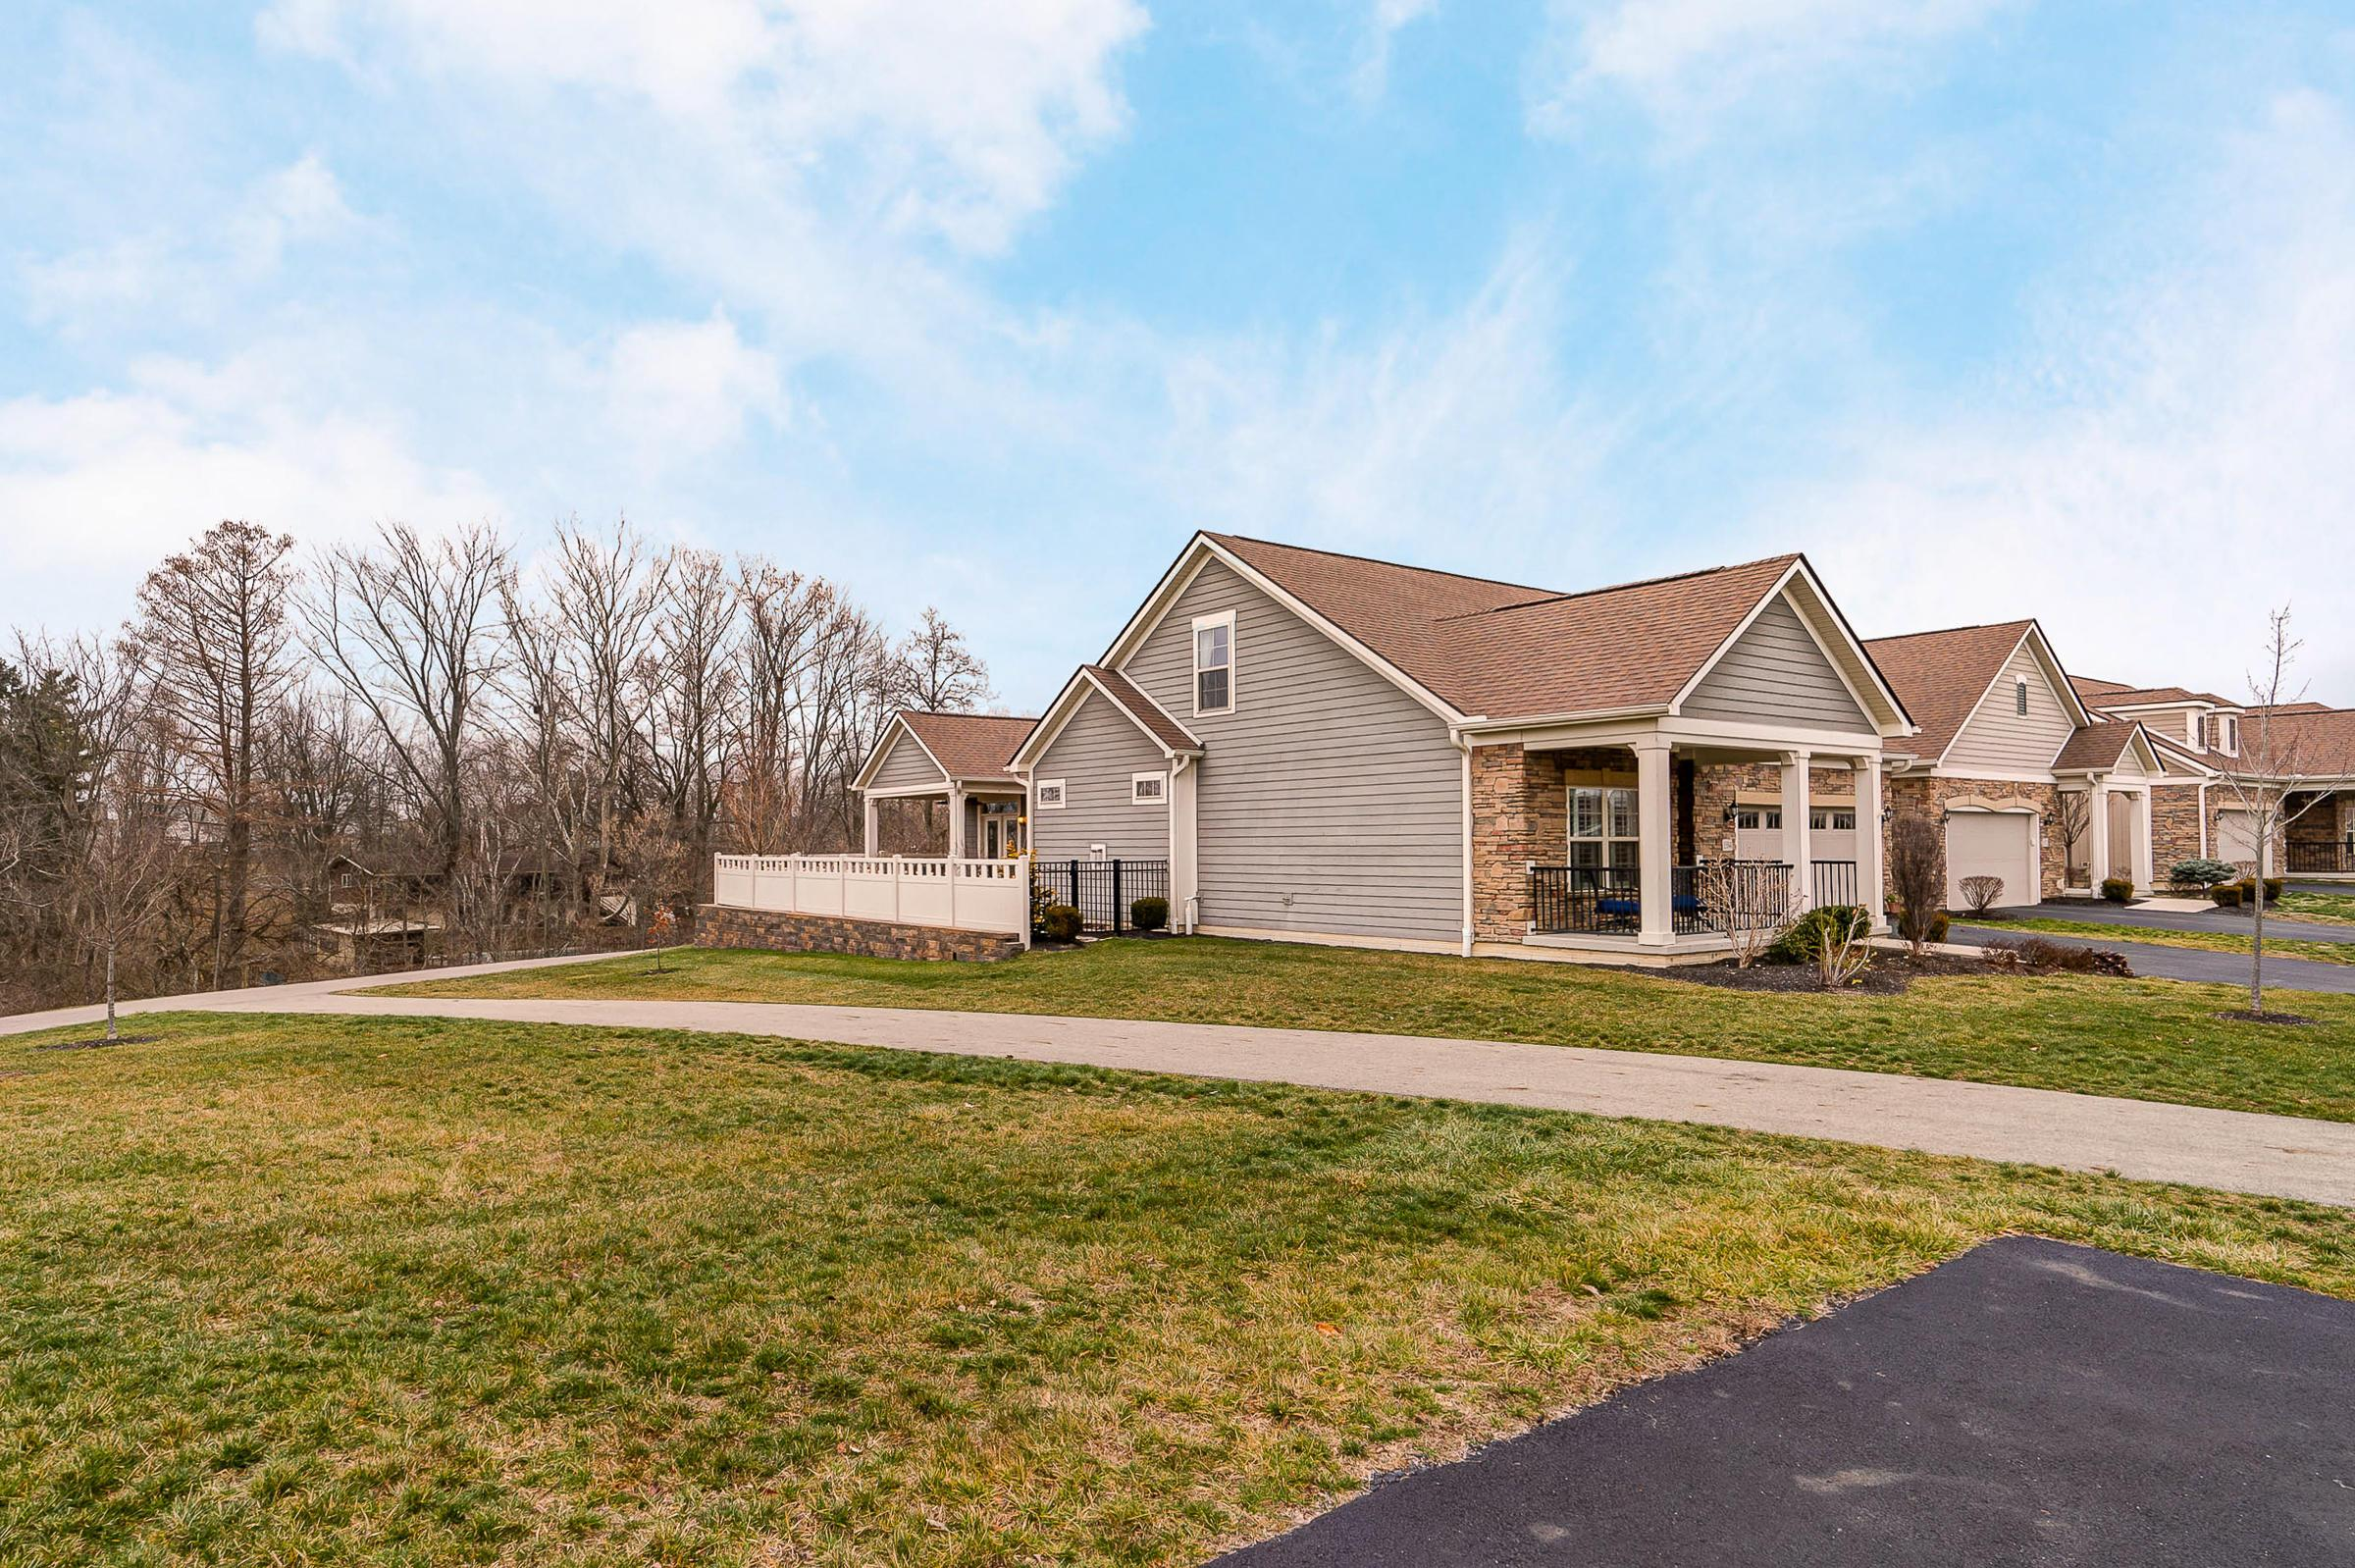 5584 Eventing Way, Hilliard, Ohio 43026, 3 Bedrooms Bedrooms, ,4 BathroomsBathrooms,Residential,For Sale,Eventing,221001009